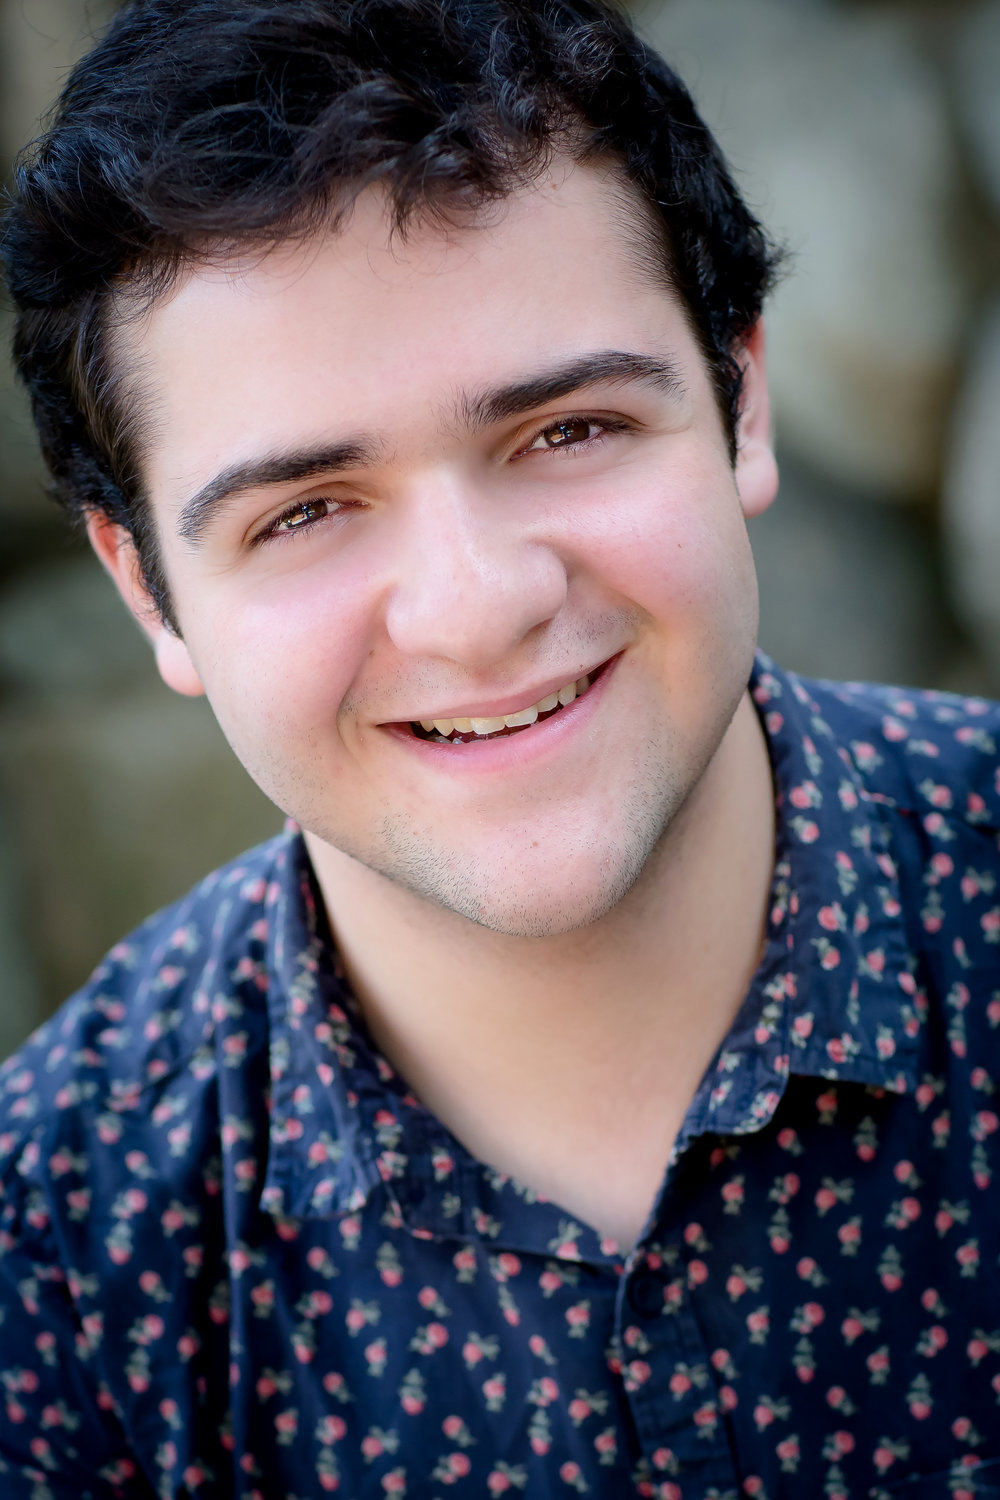 2018 Recipient - We proudly award a 2018 Scholarship to Elijah Levy-Dabb in our Young Artist Program.